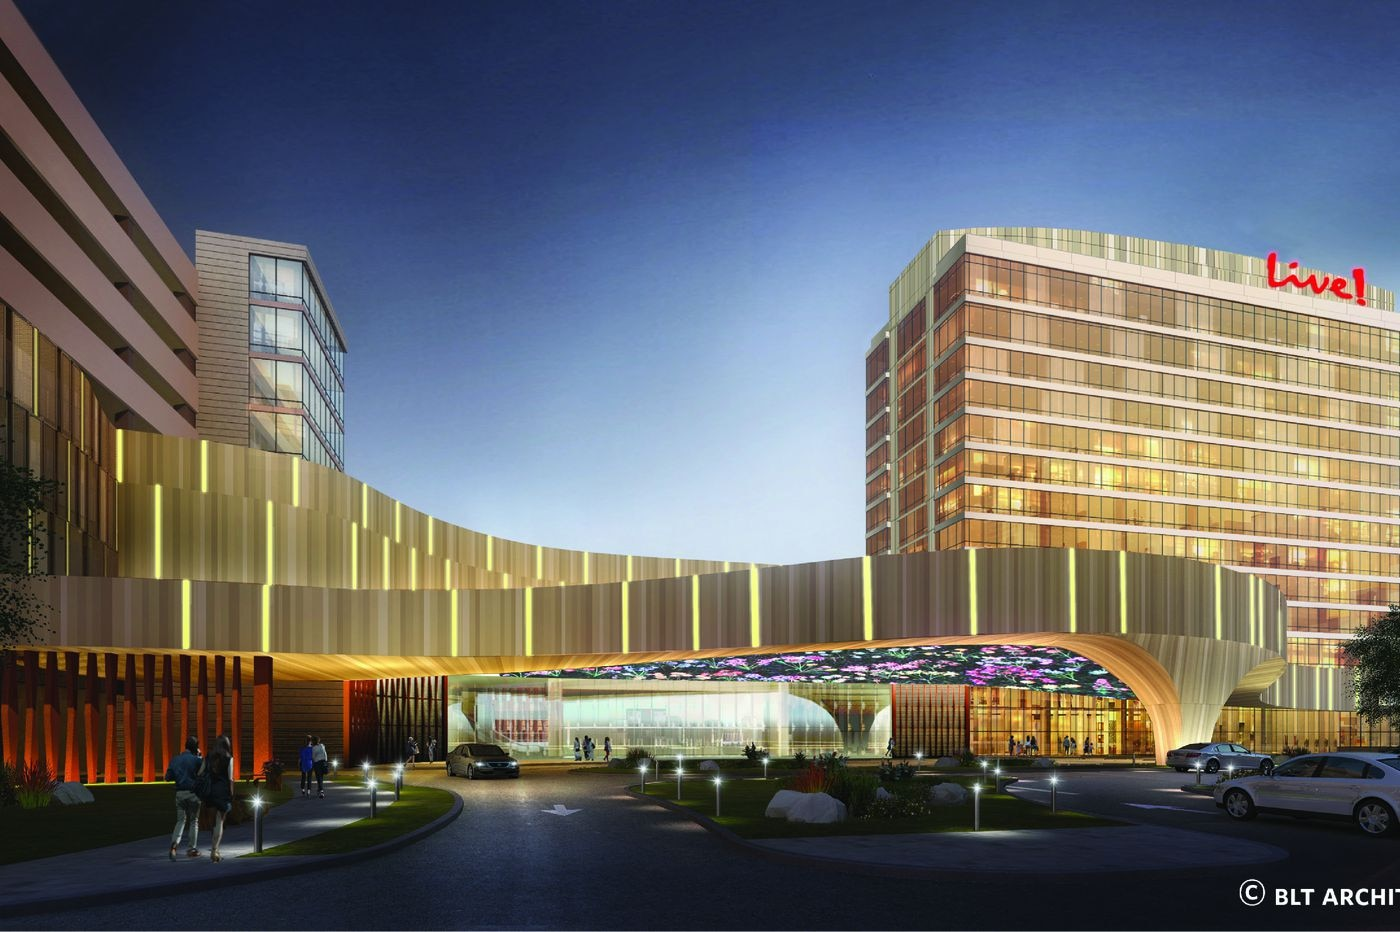 Stadium Casino wins a $3 million exit to its I-76 on-ramp conundrum